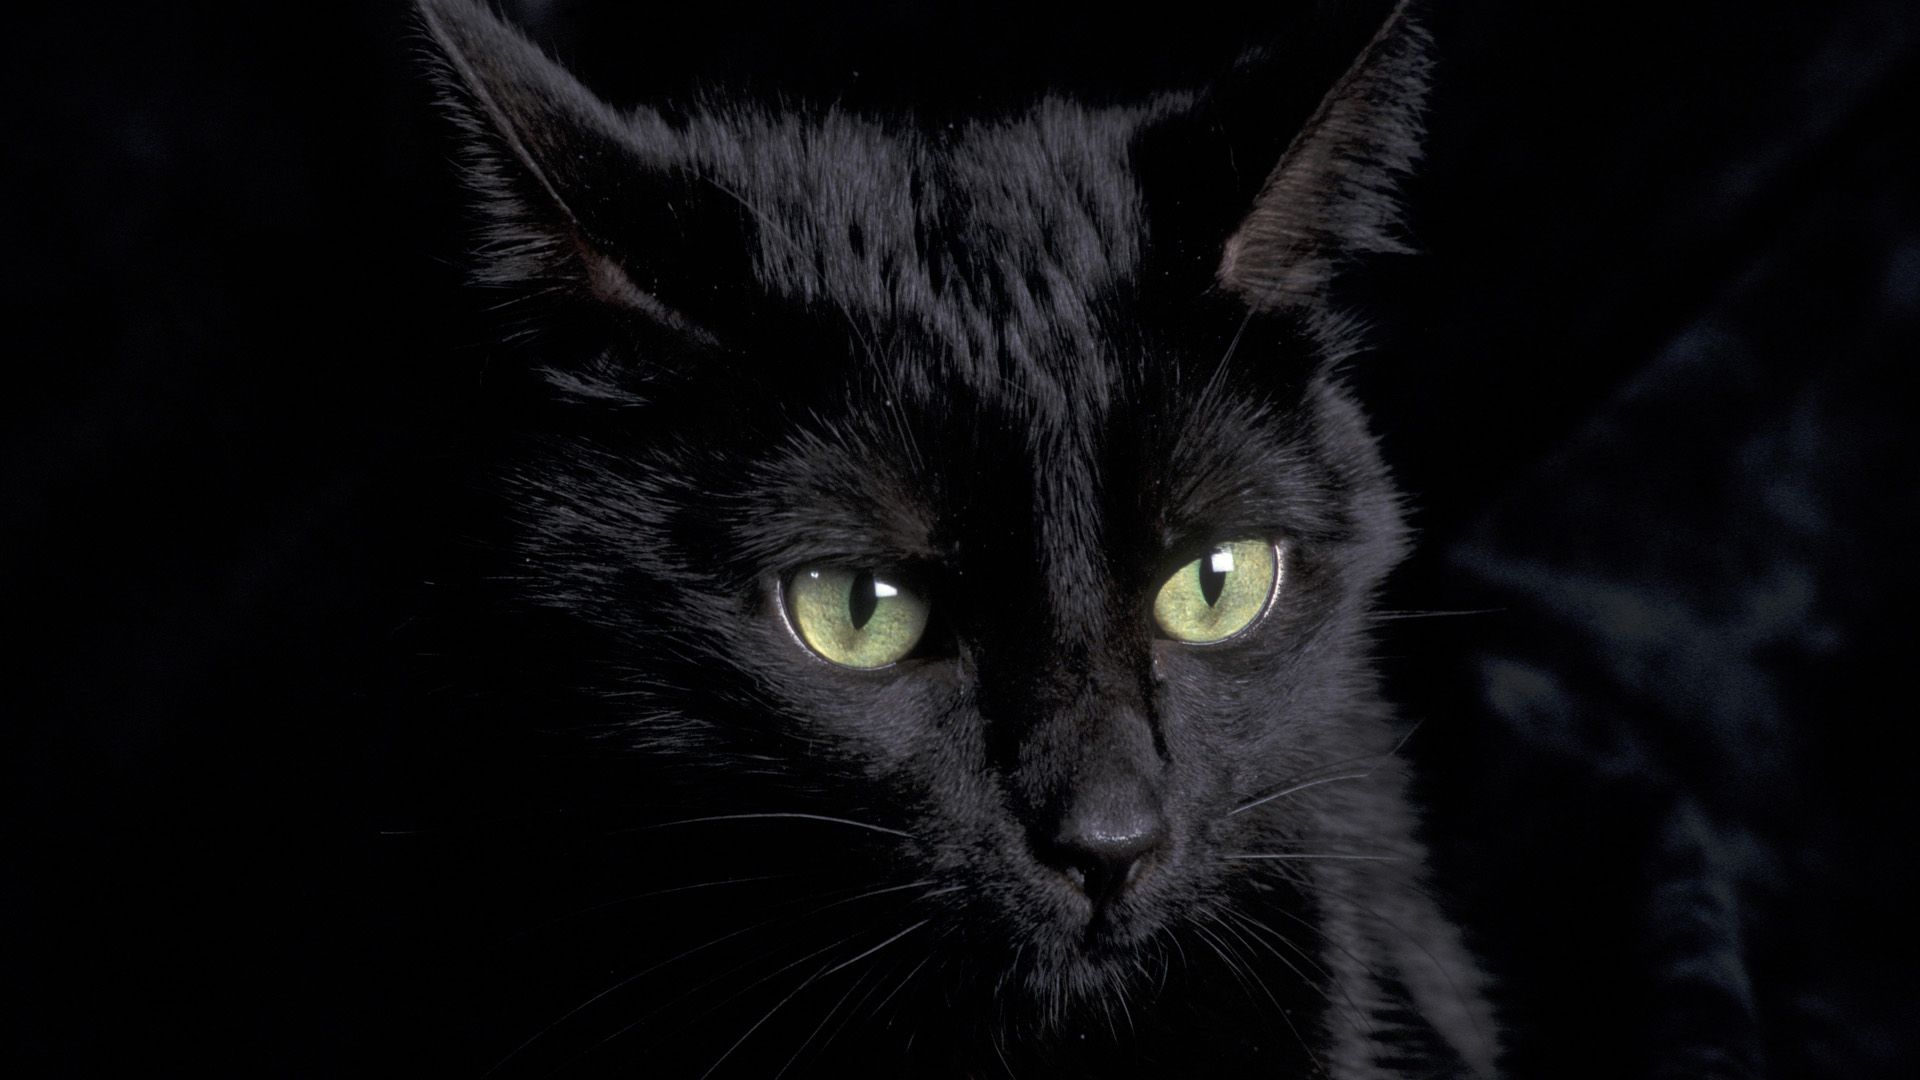 Black cat with green eyes wallpaper | Inky Dink | Cat wallpaper ... banner royalty free library